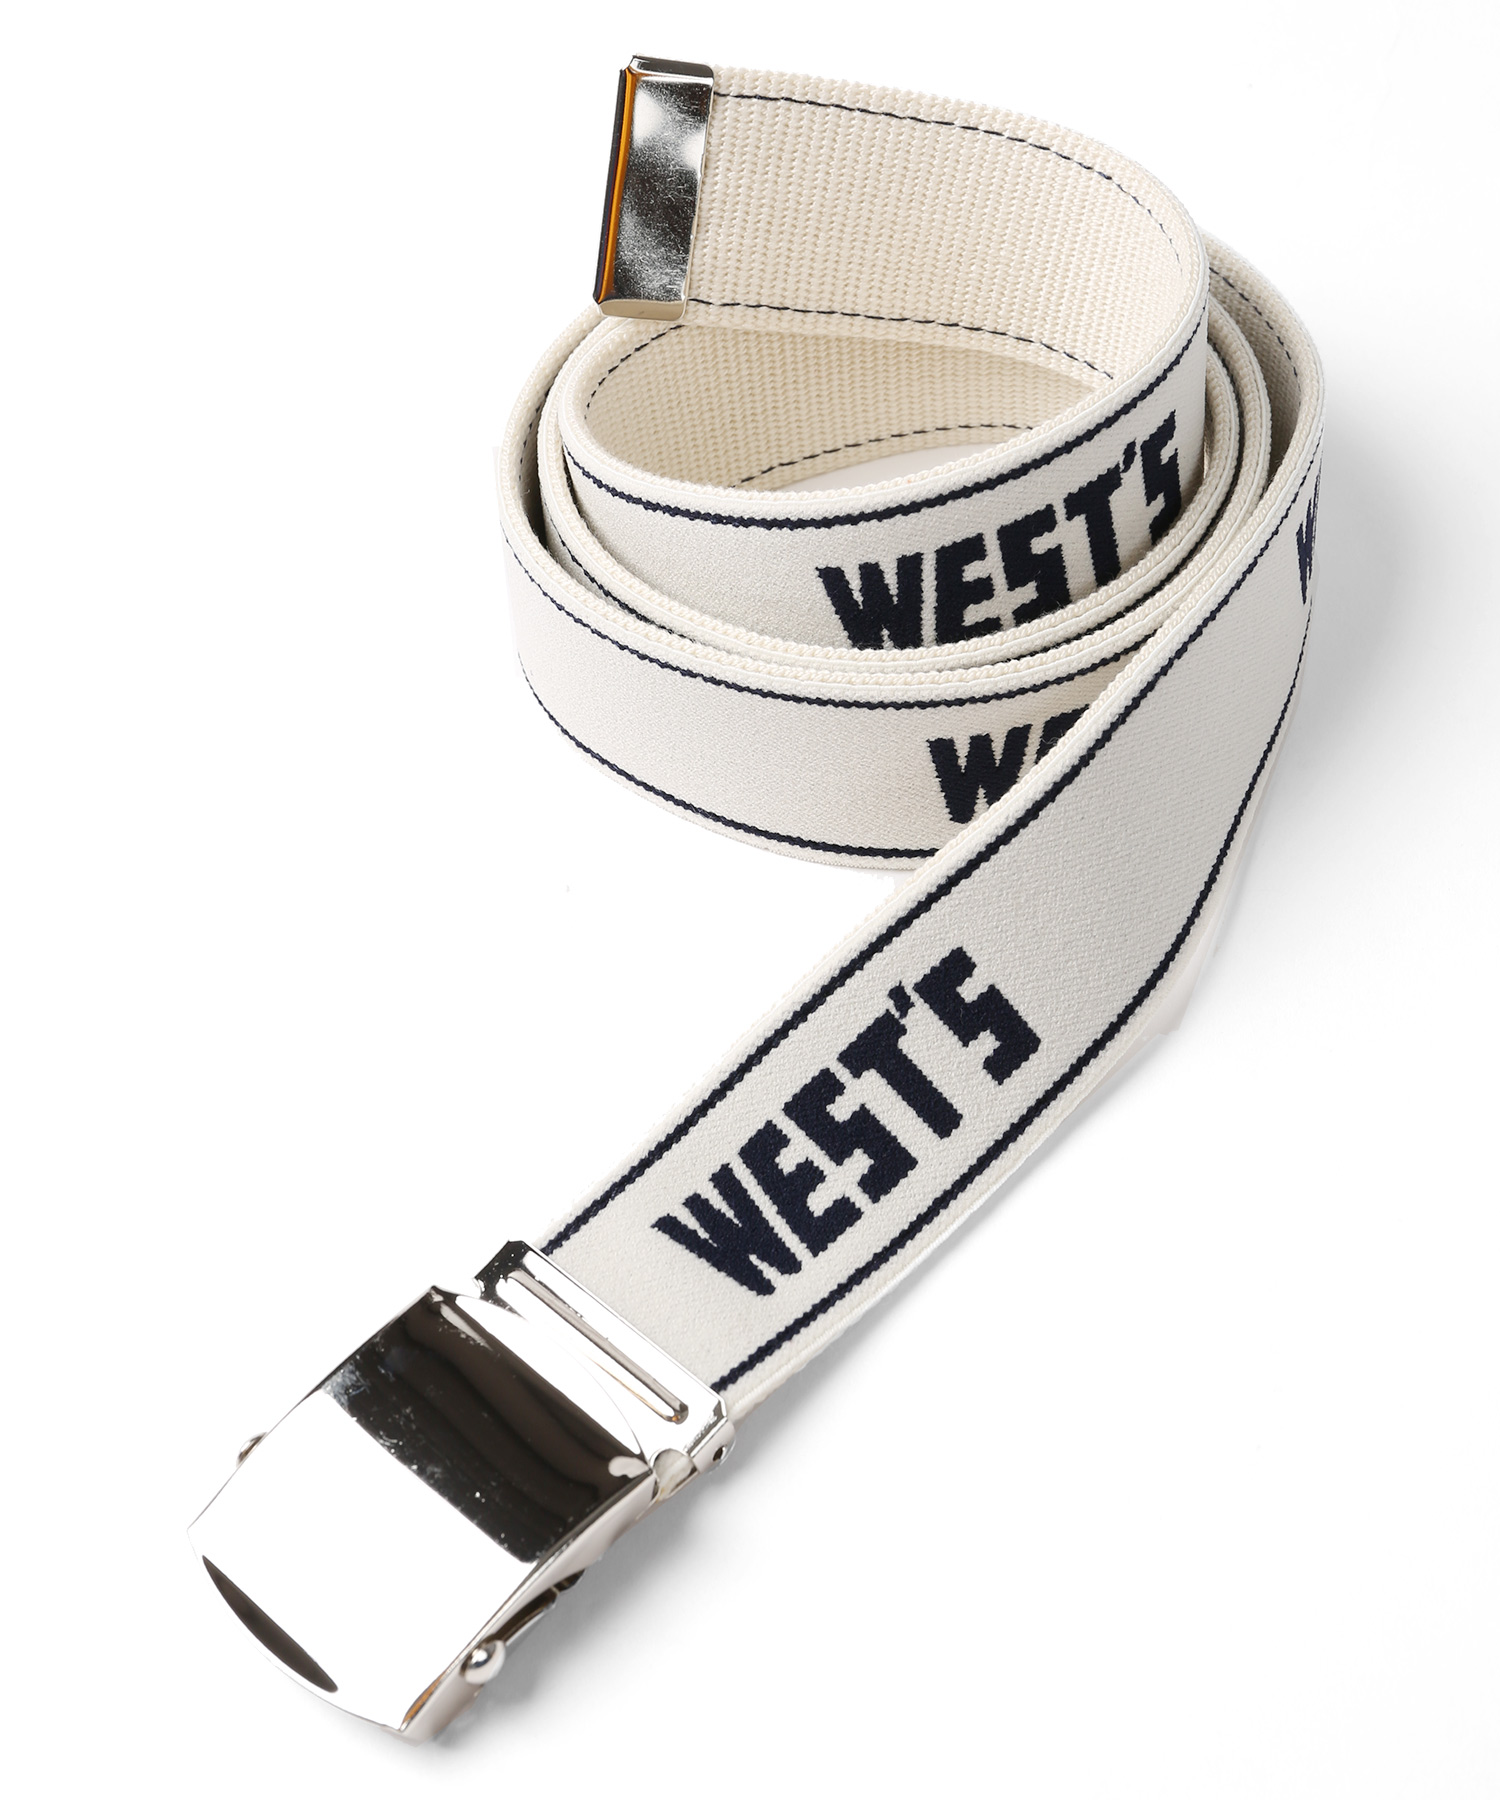 WESTOVERALLS WESTS GI BELT